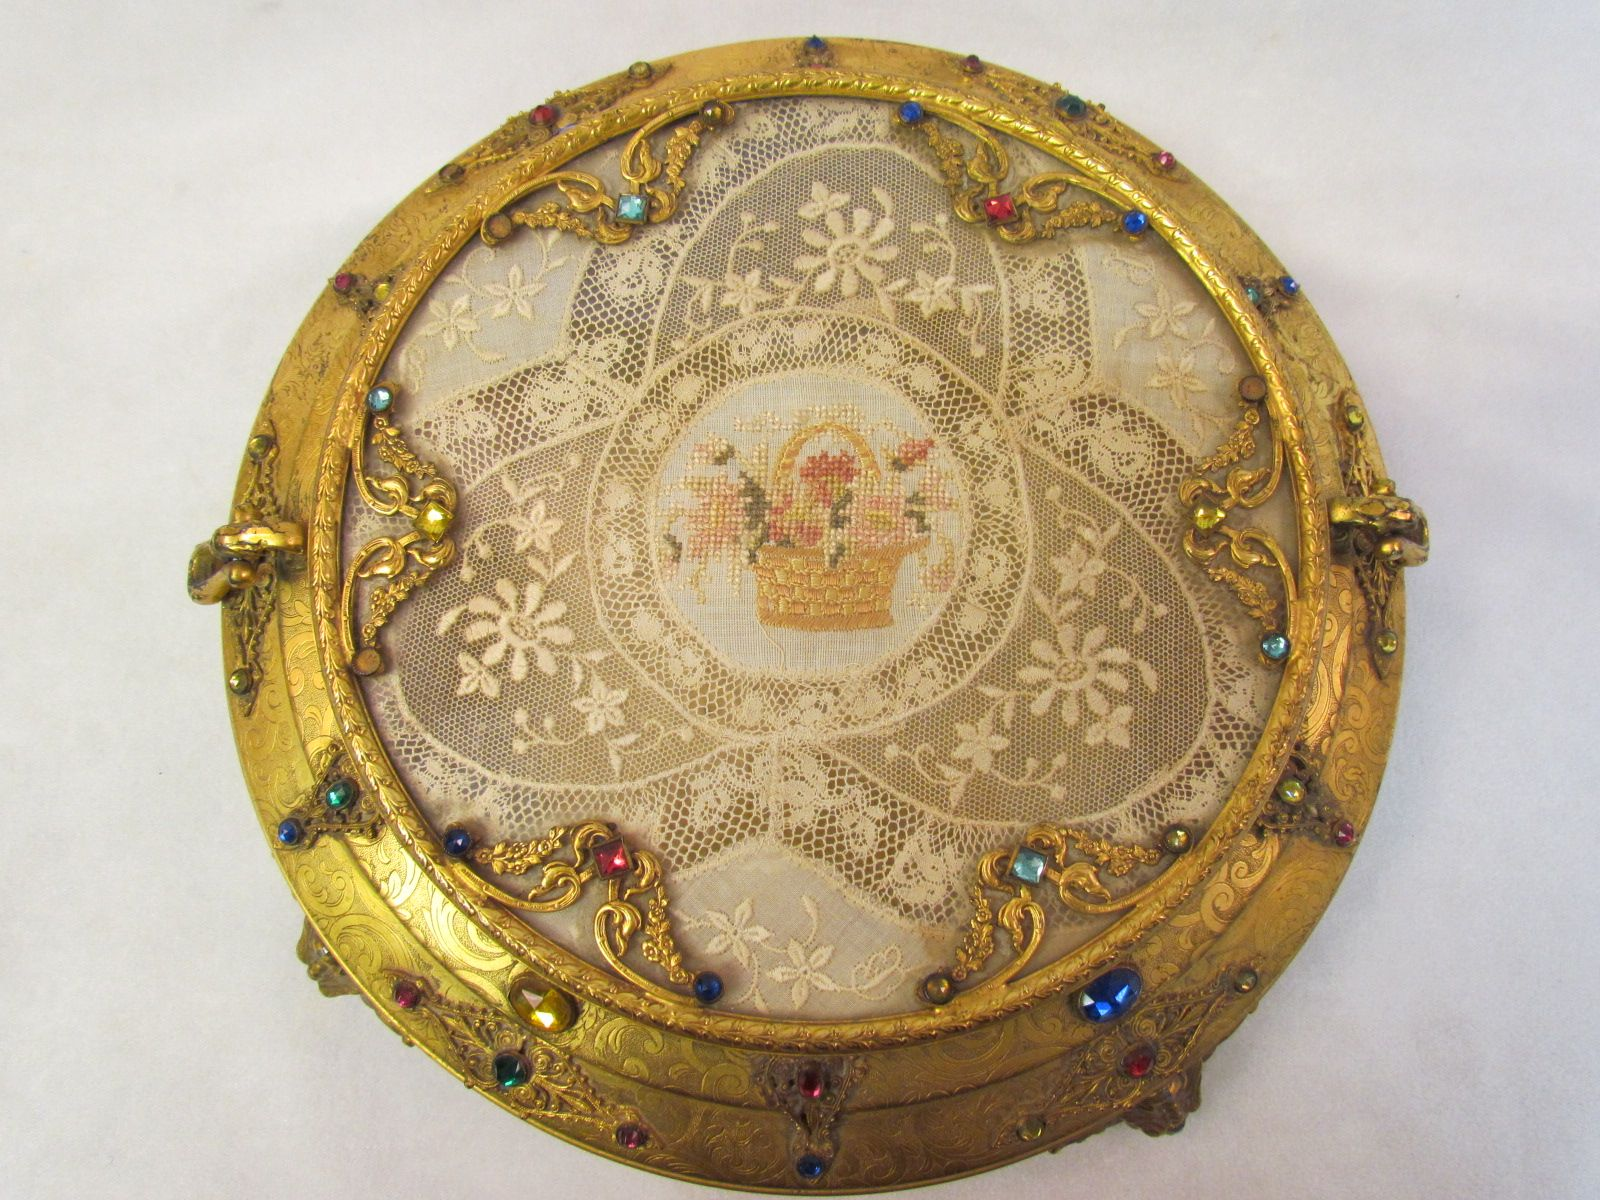 Antique vanity tray with lace insert - Apollo Jeweled Vanity Box Google Search Antique Vanityvanity Tray Vanitiesperfume